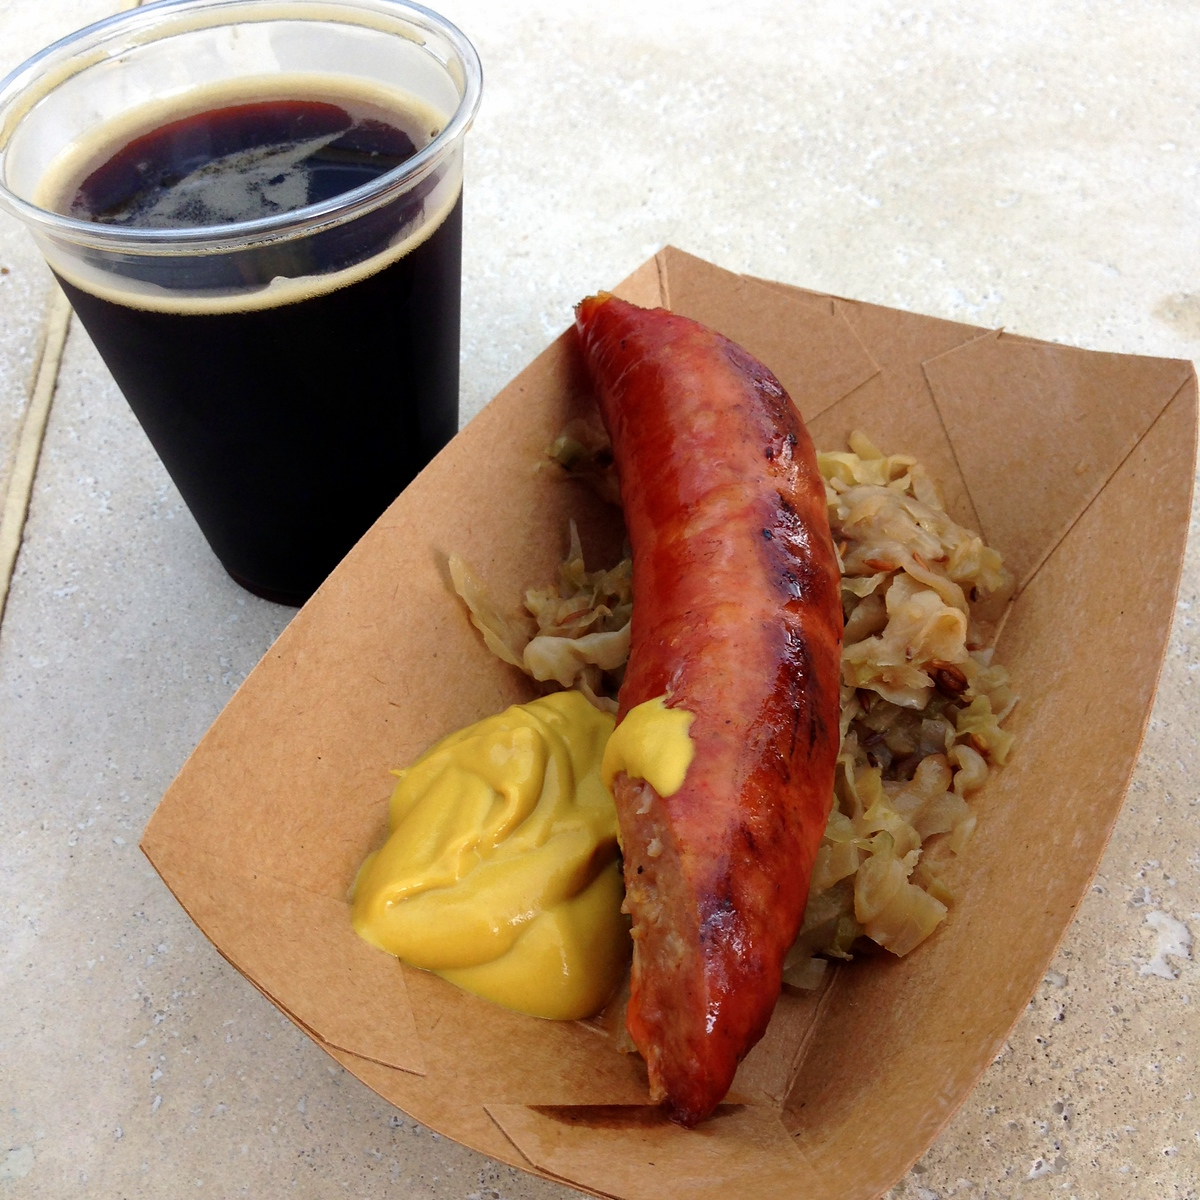 Maple Bacon Stout and Smoked Debreziner Sausage with sauerkraut and mustard from the Smokehouse Outdoor Kitchen at the 2015 Epcot International Flower and Garden Festival